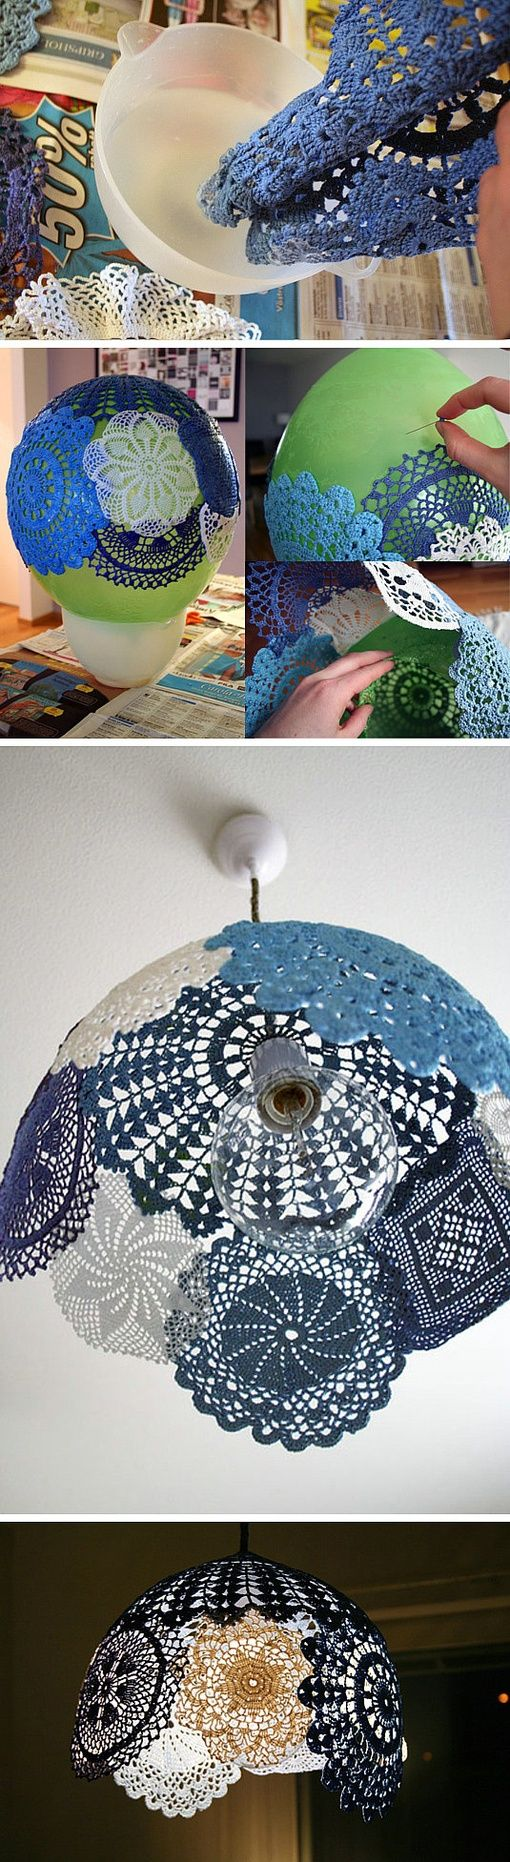 cool lampshade idea @ Home Ideas and Designs: